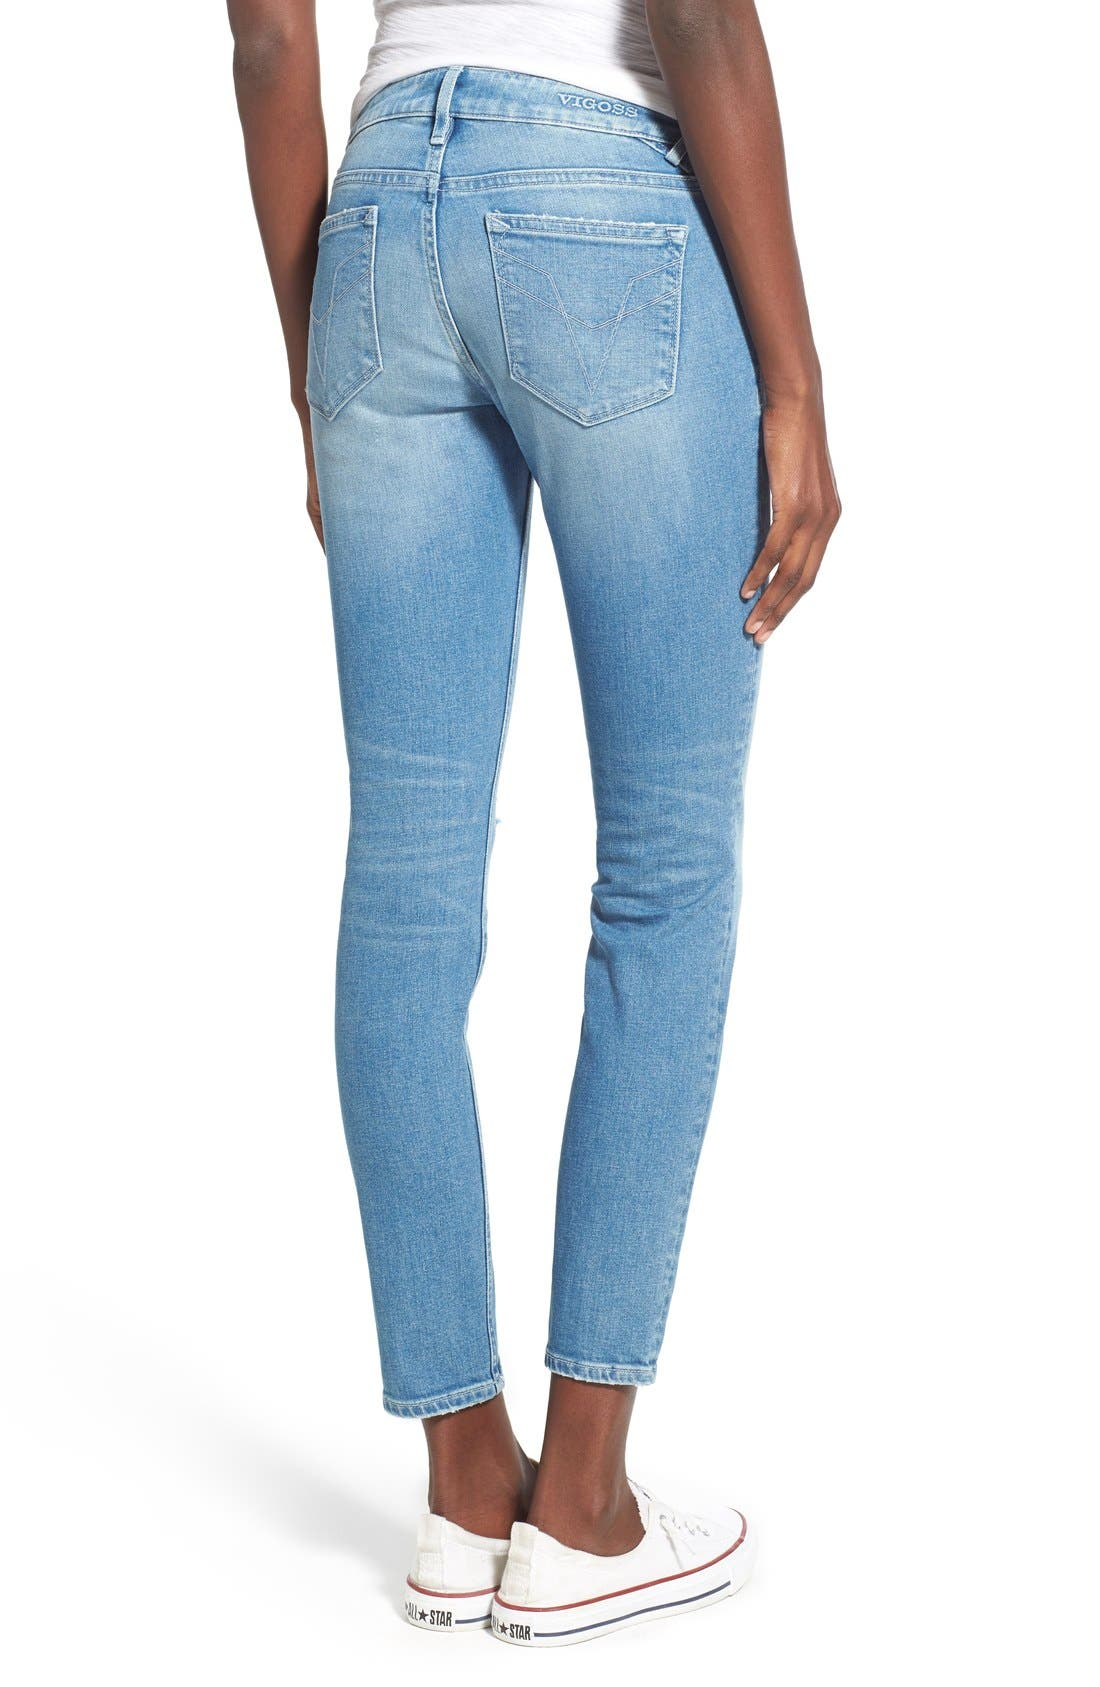 Alternate Image 2  - Vigoss 'Chelsea' Super Skinny Jeans (Light Wash)